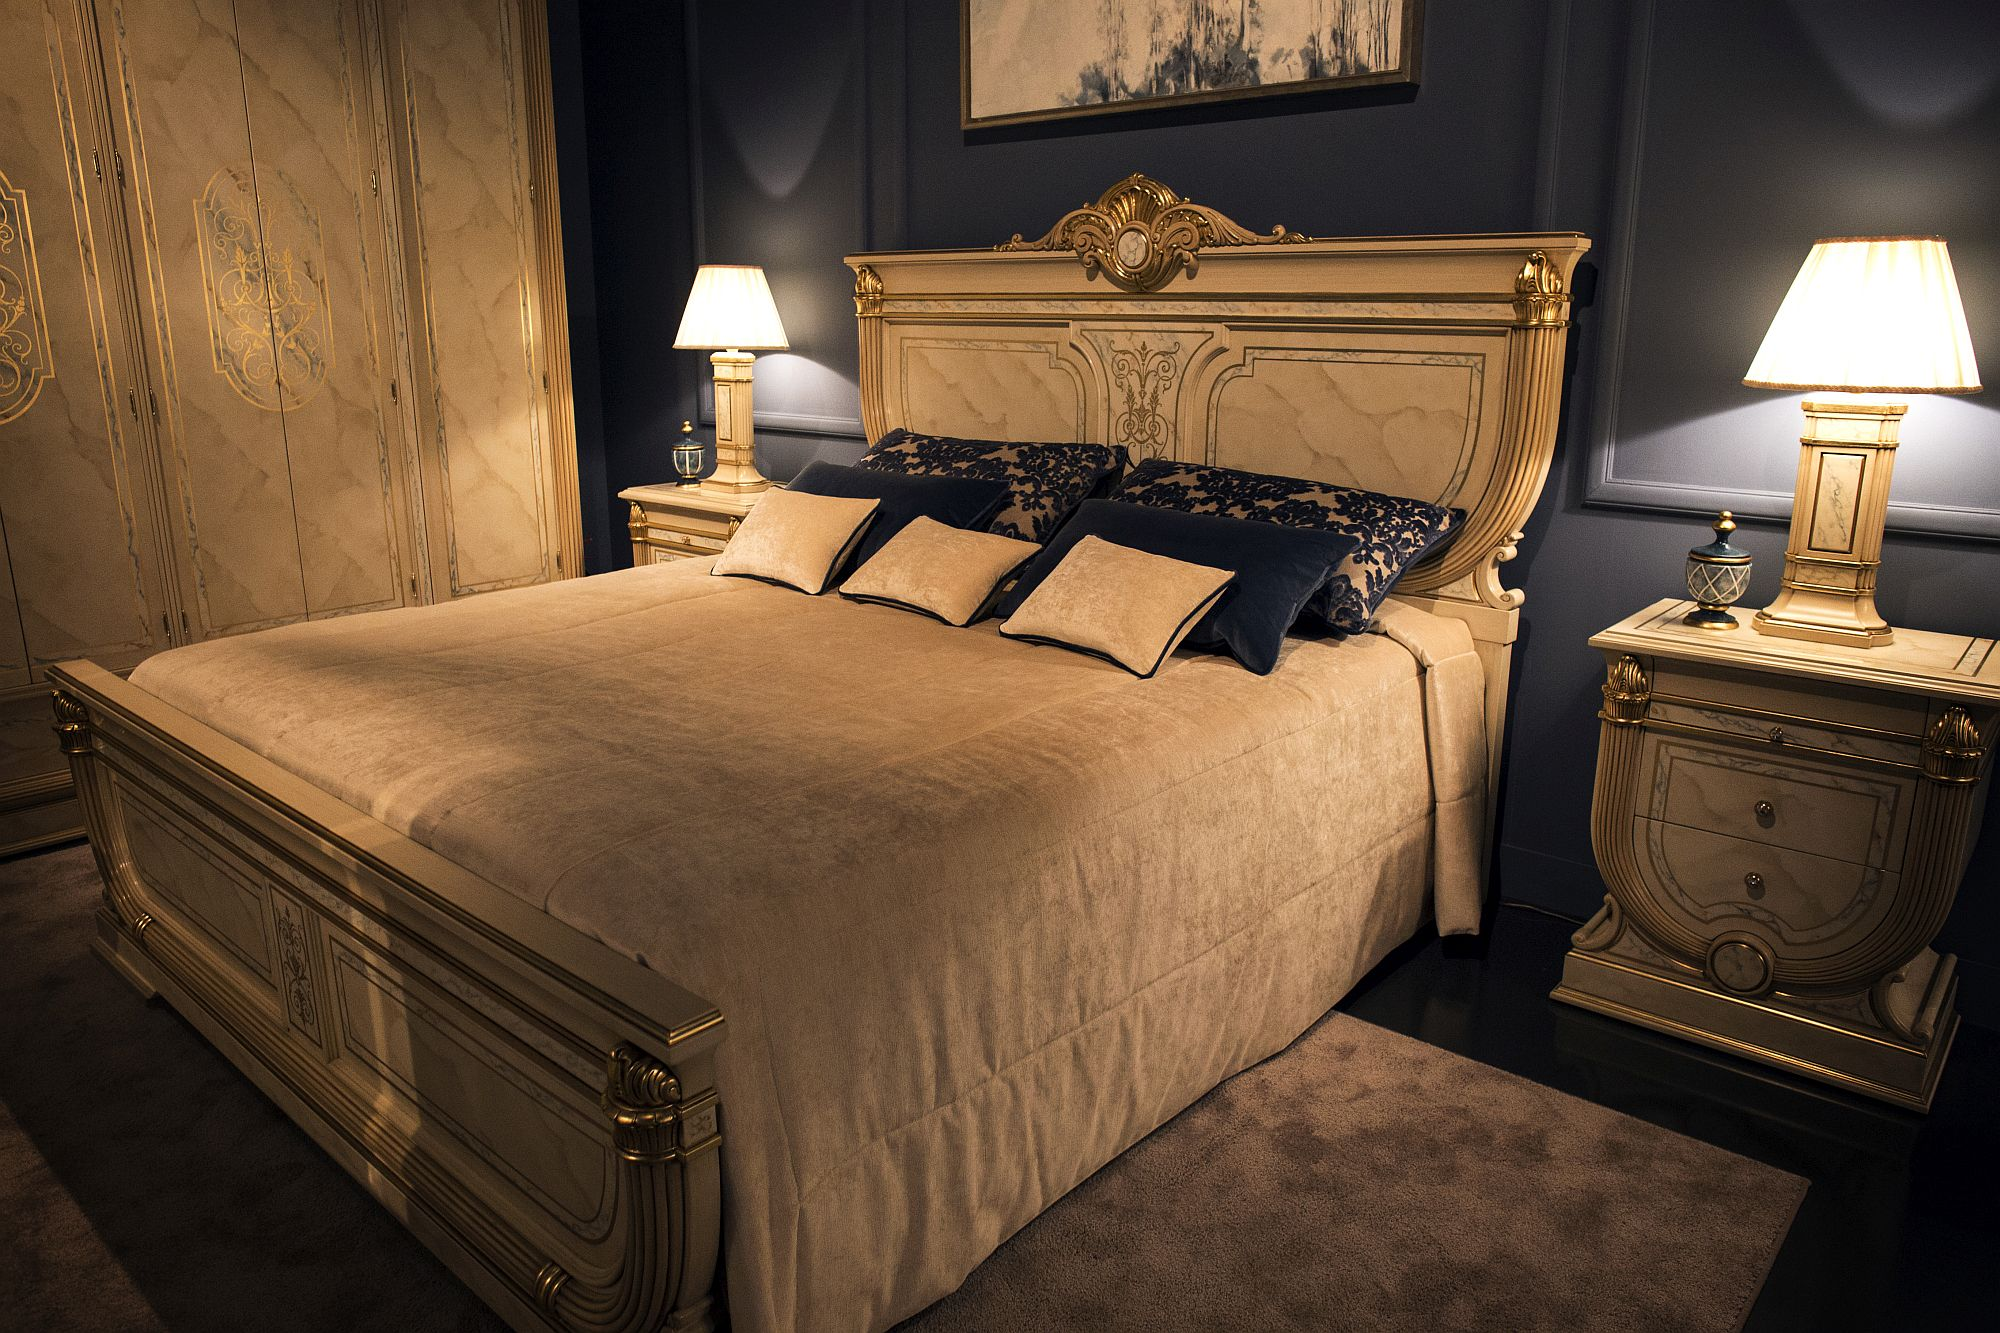 Bedside tables with matching table lamps for the lavish, traditional bedroom